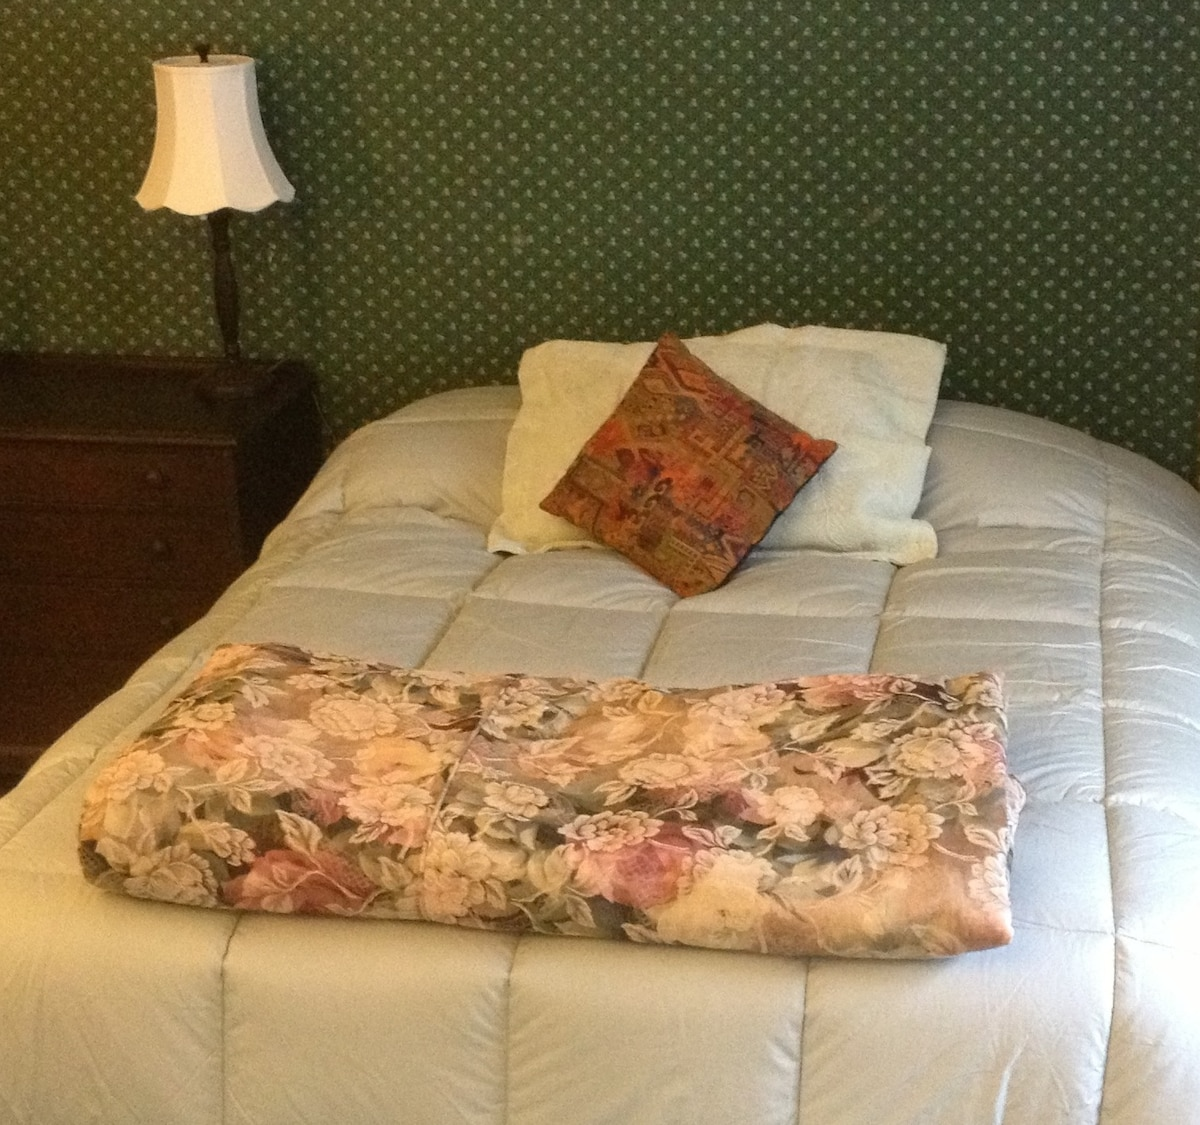 Your very comfortable queen bed - with a new mattress, new pillows, new comforter for you